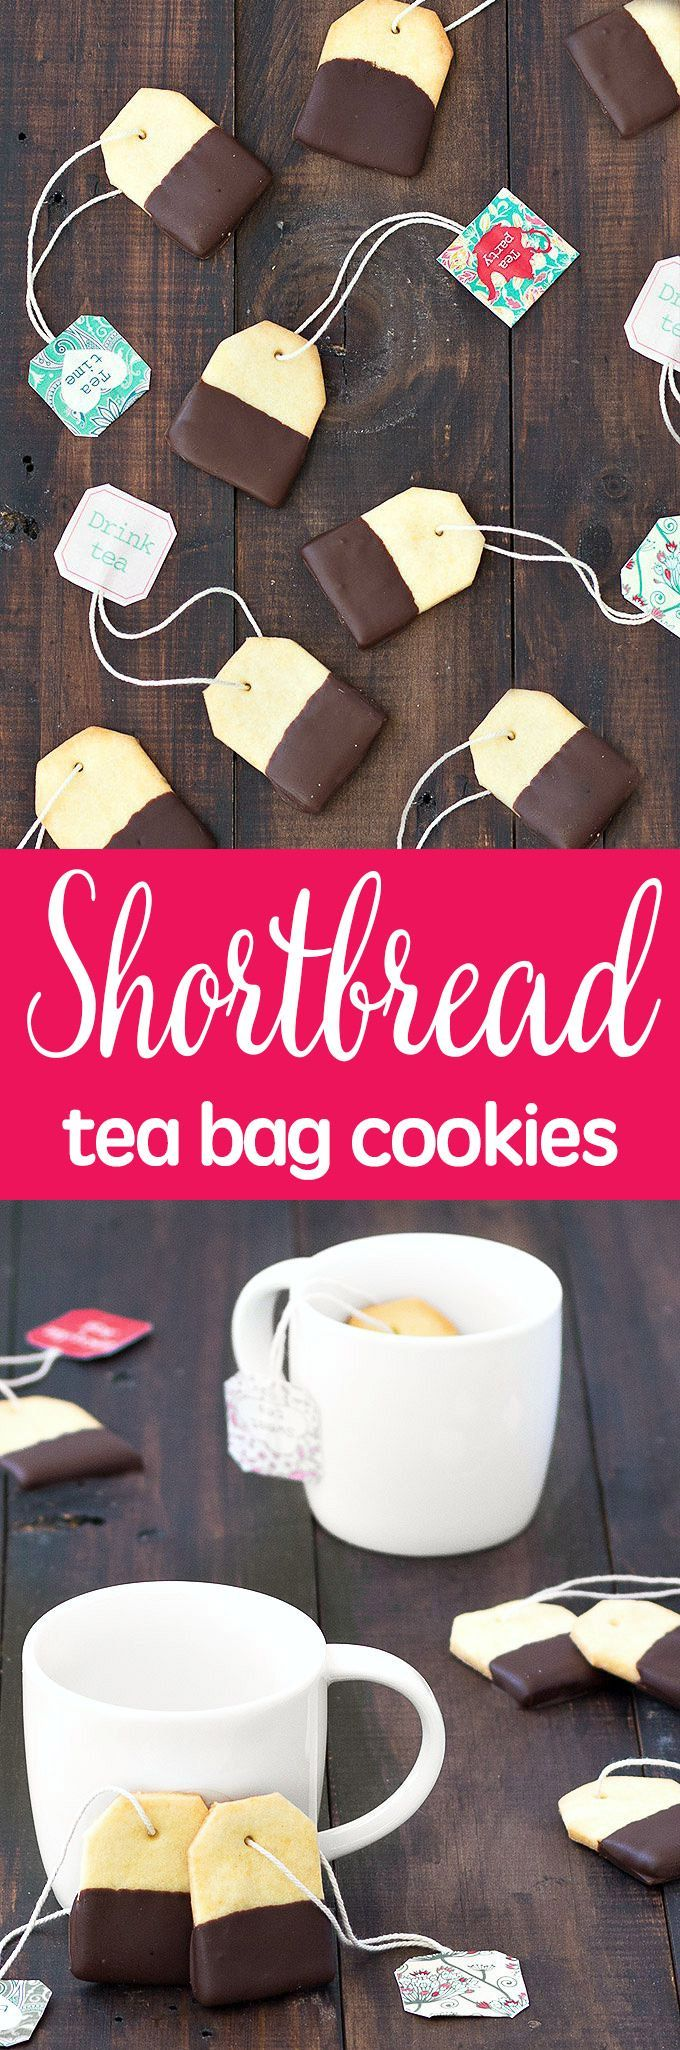 Impress your friends the next time you have them over for tea with these chocolate dipped shortbread tea bag cookies. Super easy recipe with step by step tutorial. (Chocolate Party Table)